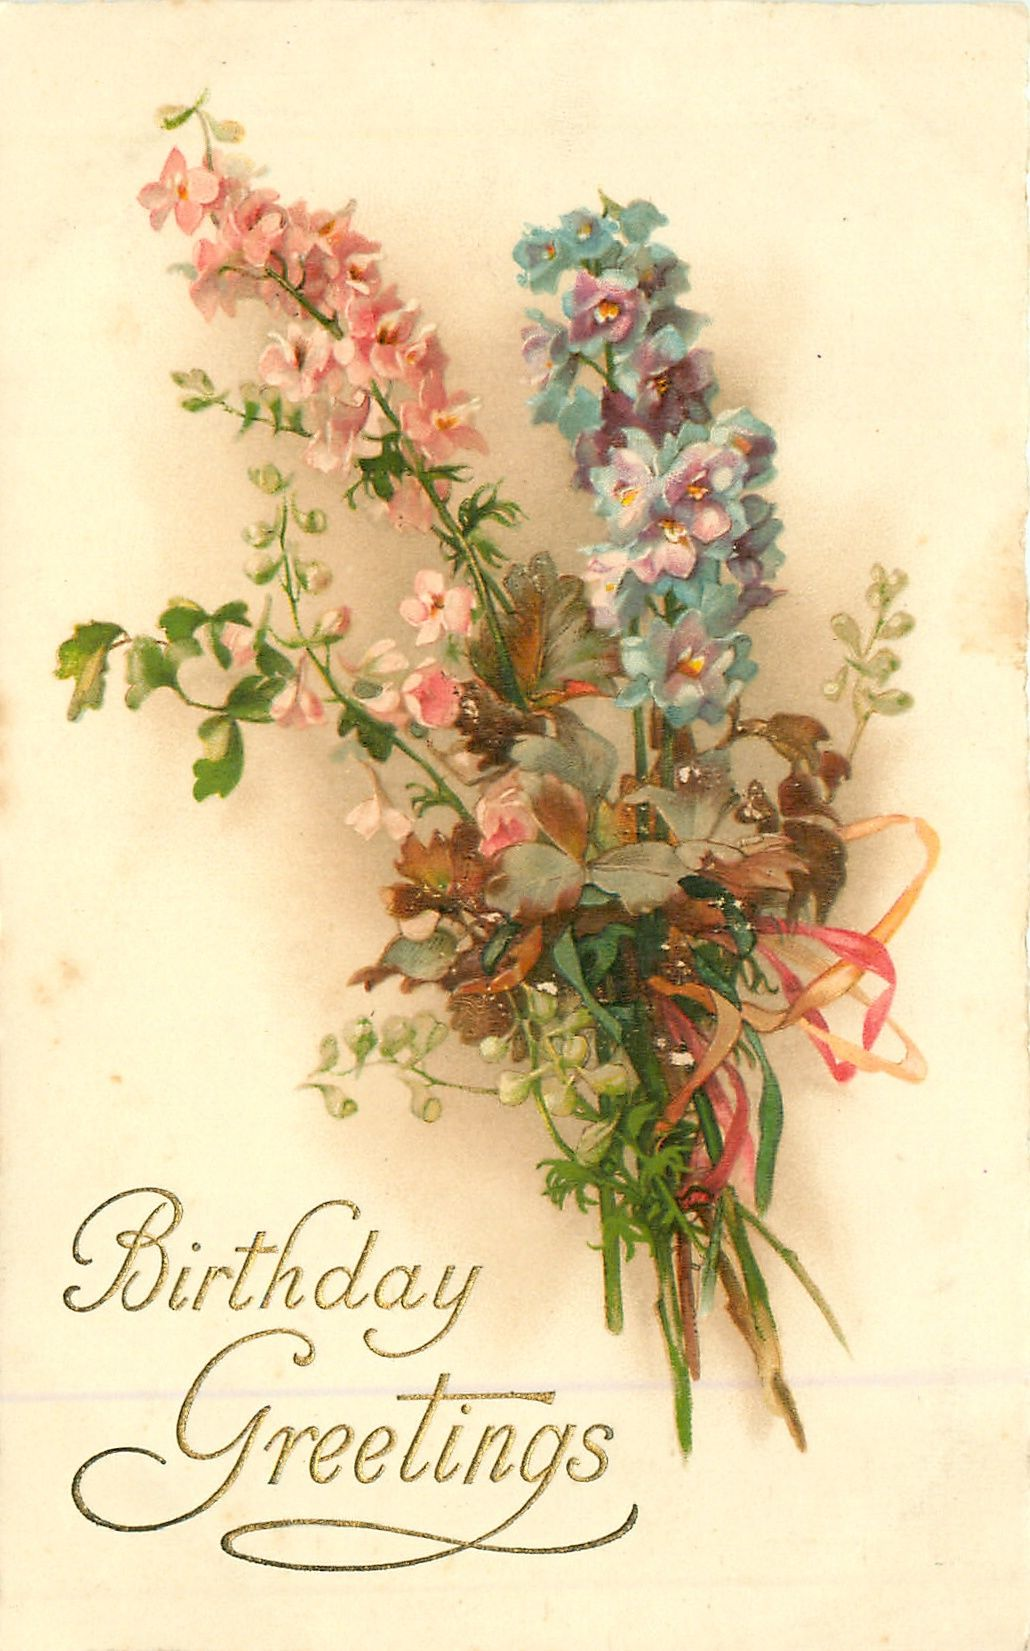 BIRTHDAY GREETINGS bouquet of flowers | Images | Pinterest ...